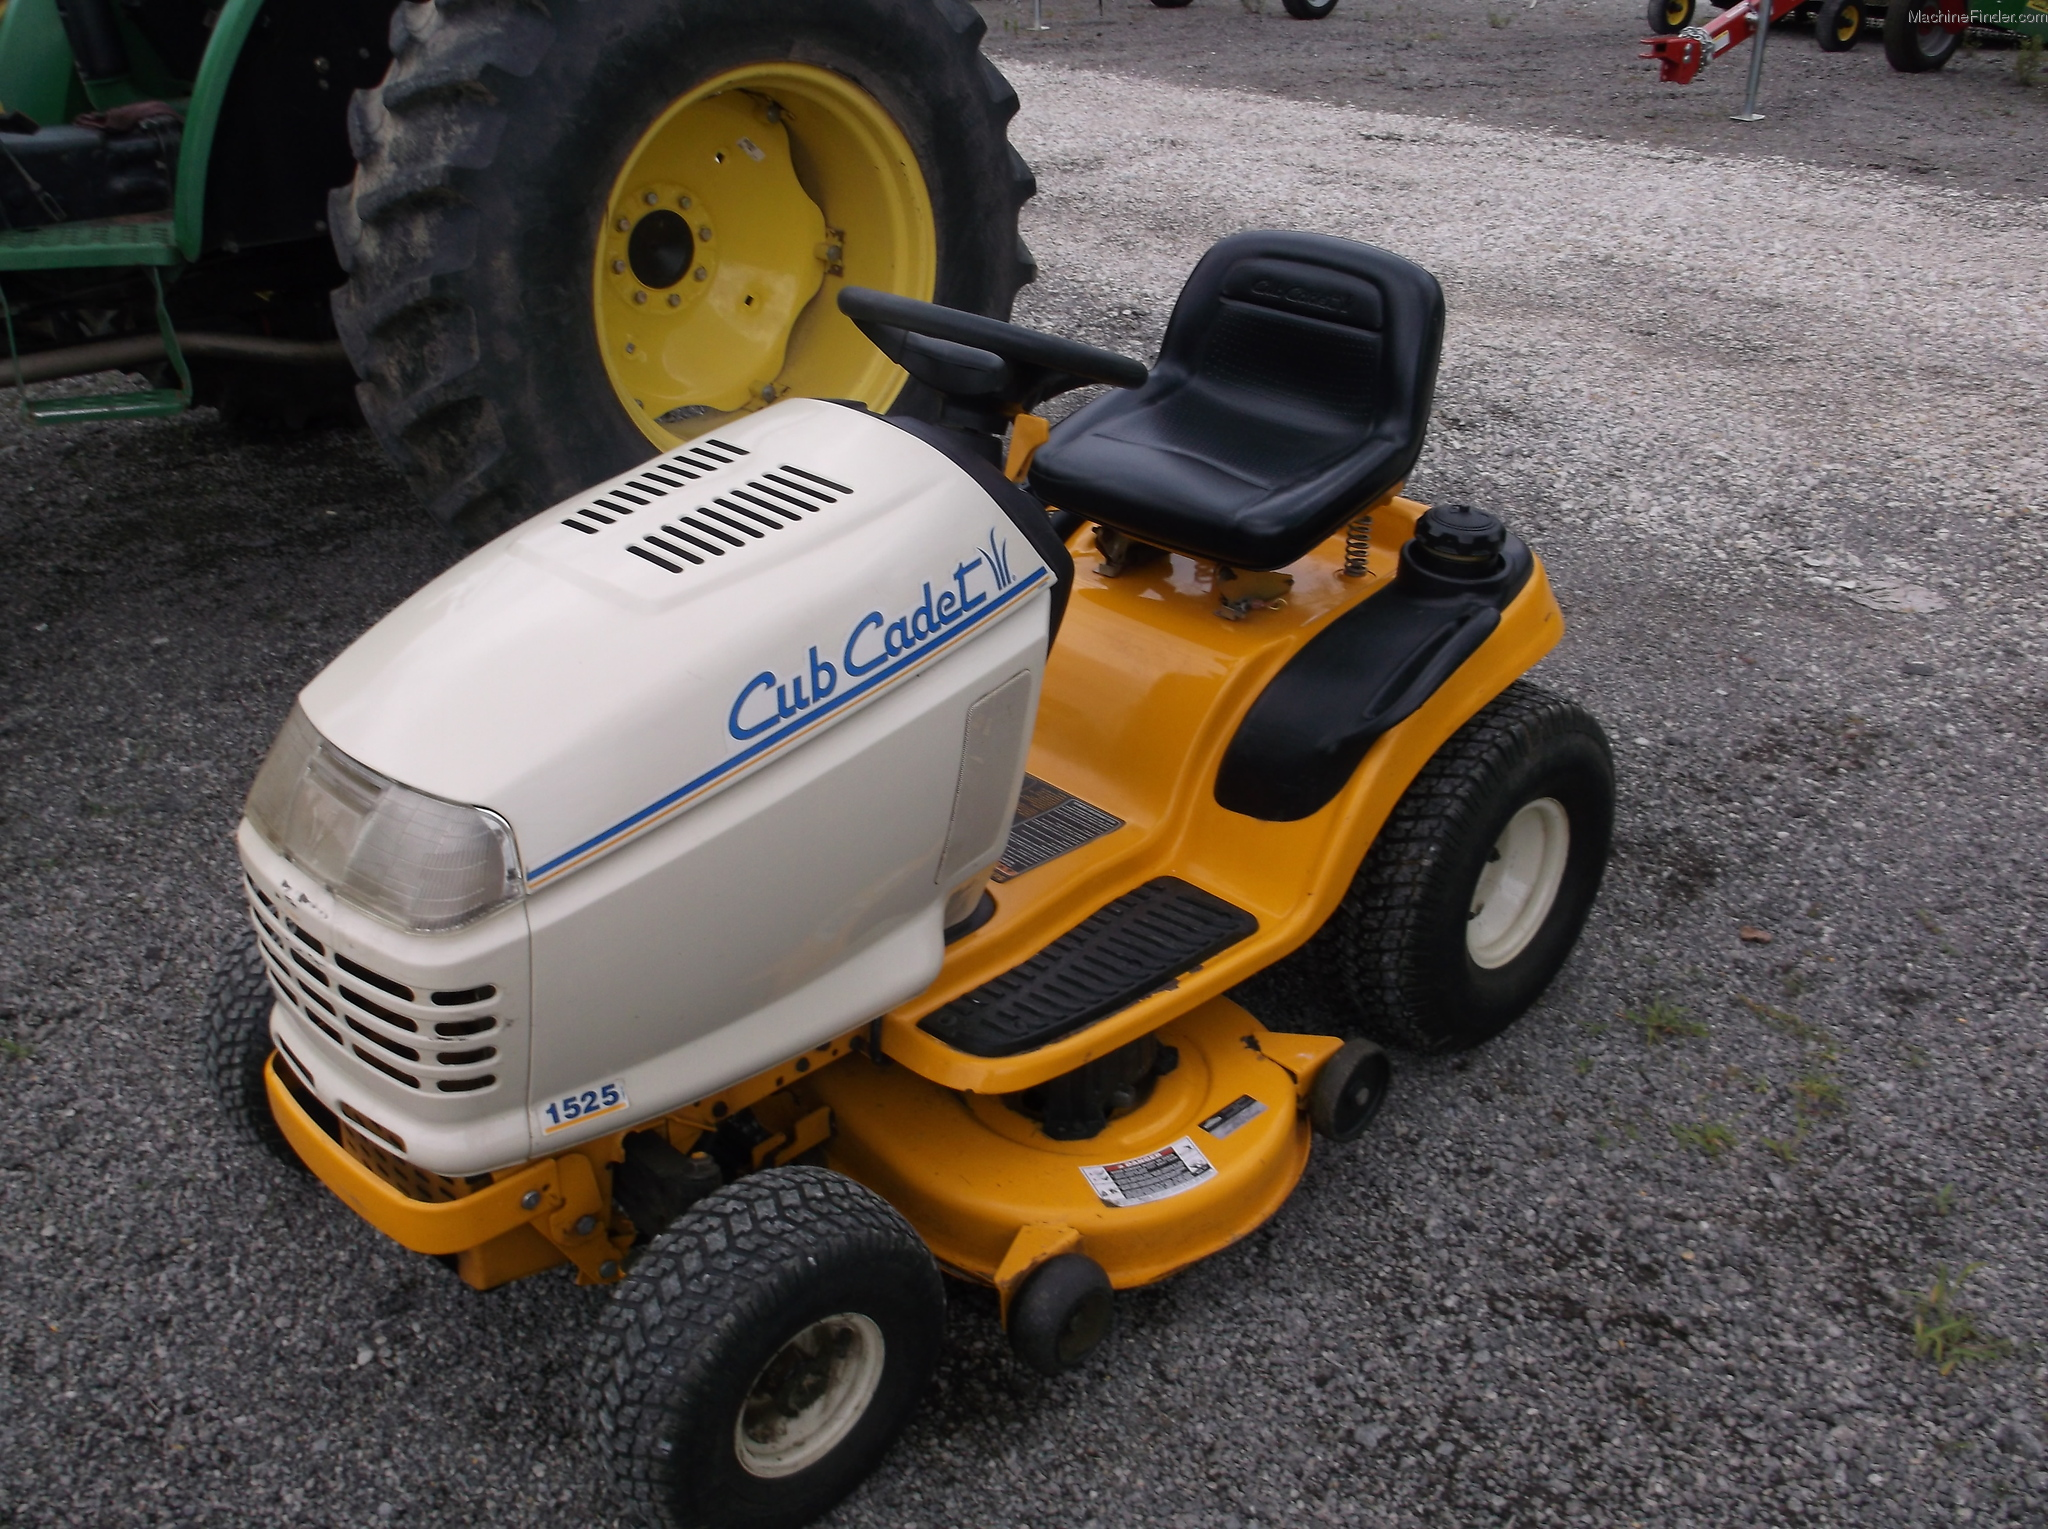 Cub Cadet 1525 Industrial Tractor Tractors 1440 Wiring Diagram 2003 Lawn Garden And Commercial Mowing John Deere